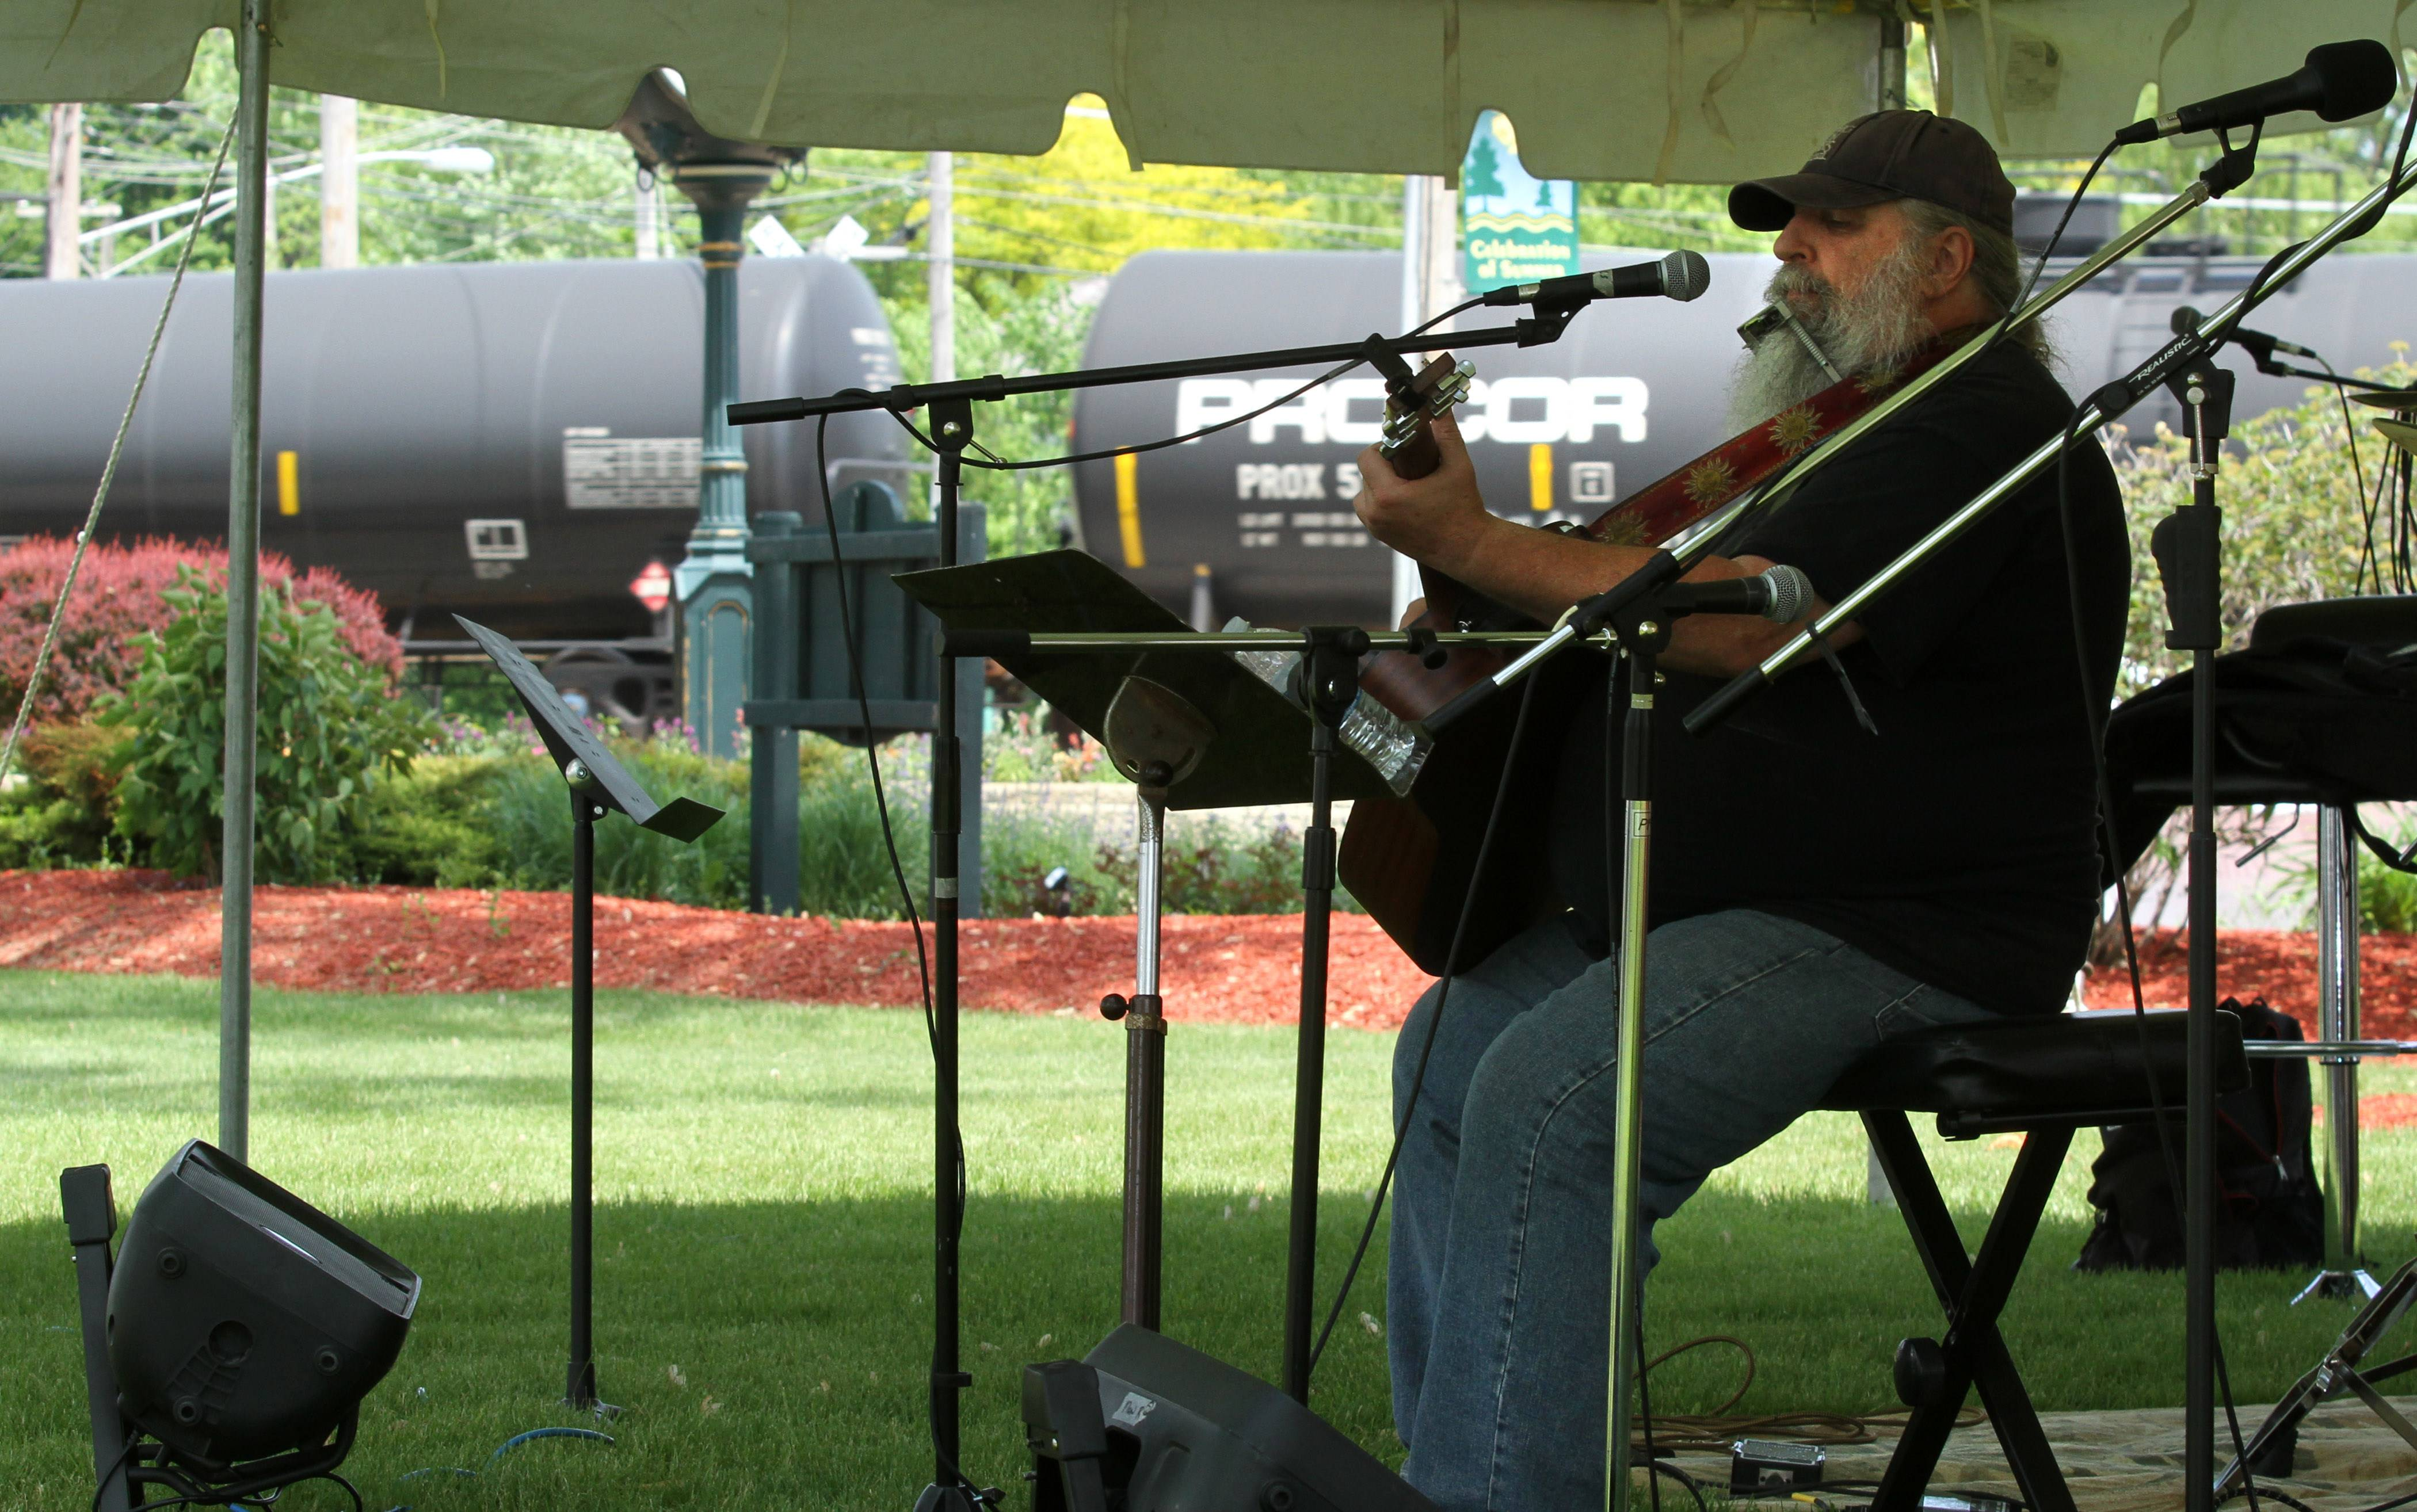 Jimmy Liggett, a Northbrook carpenter by trade, continued to perform solo Saturday as a loud cargo train traveled past Lehmann Park during Lake Villa's Art in the Park art and music festival